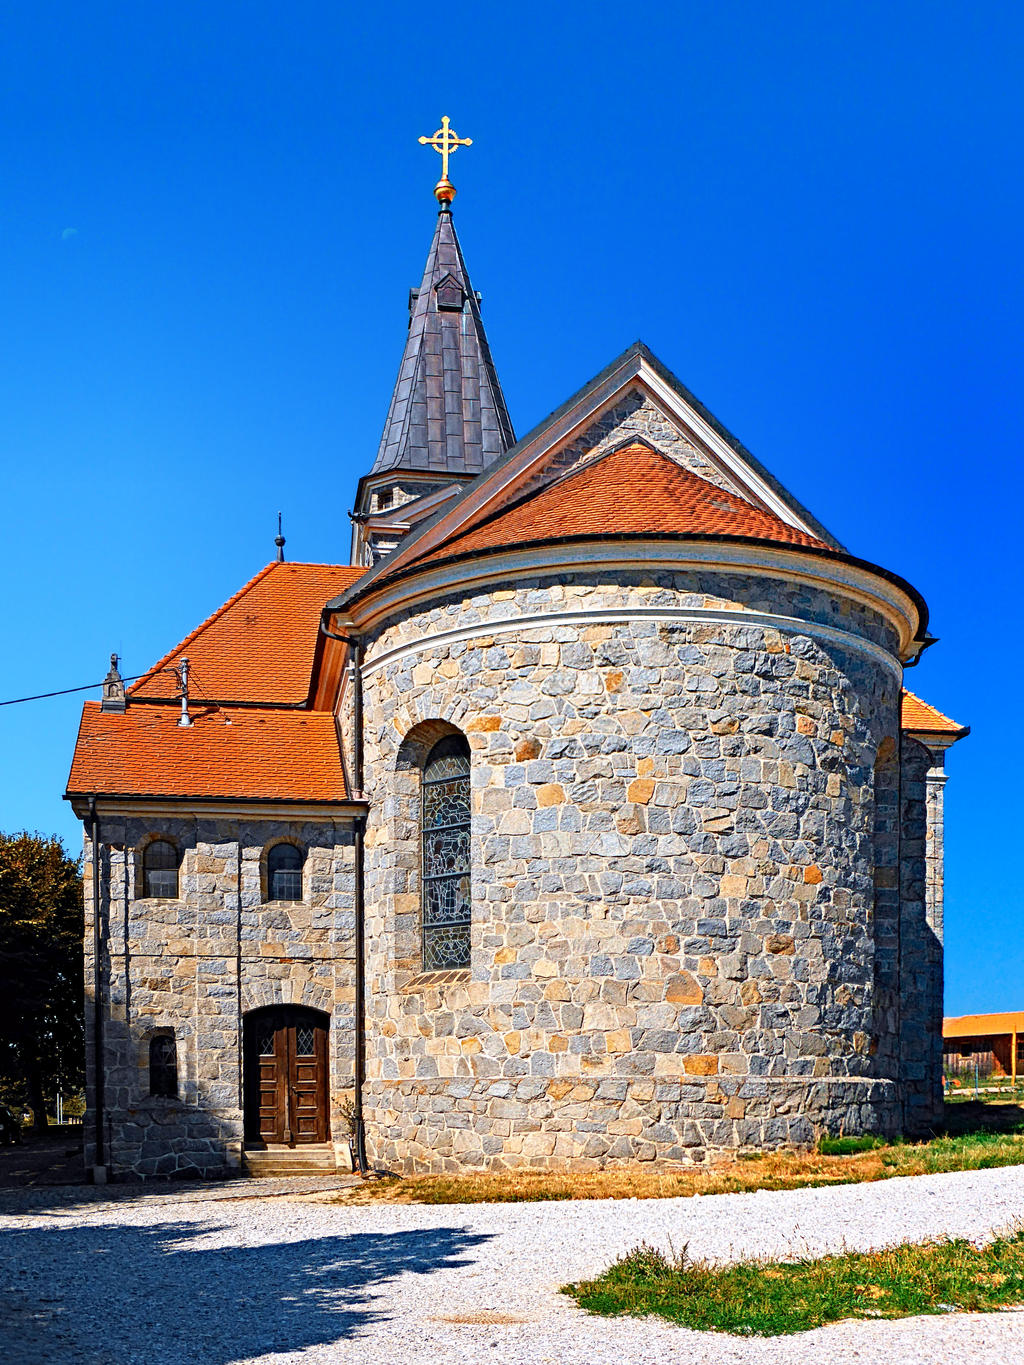 The village church of Eggendorf by patrickjobst